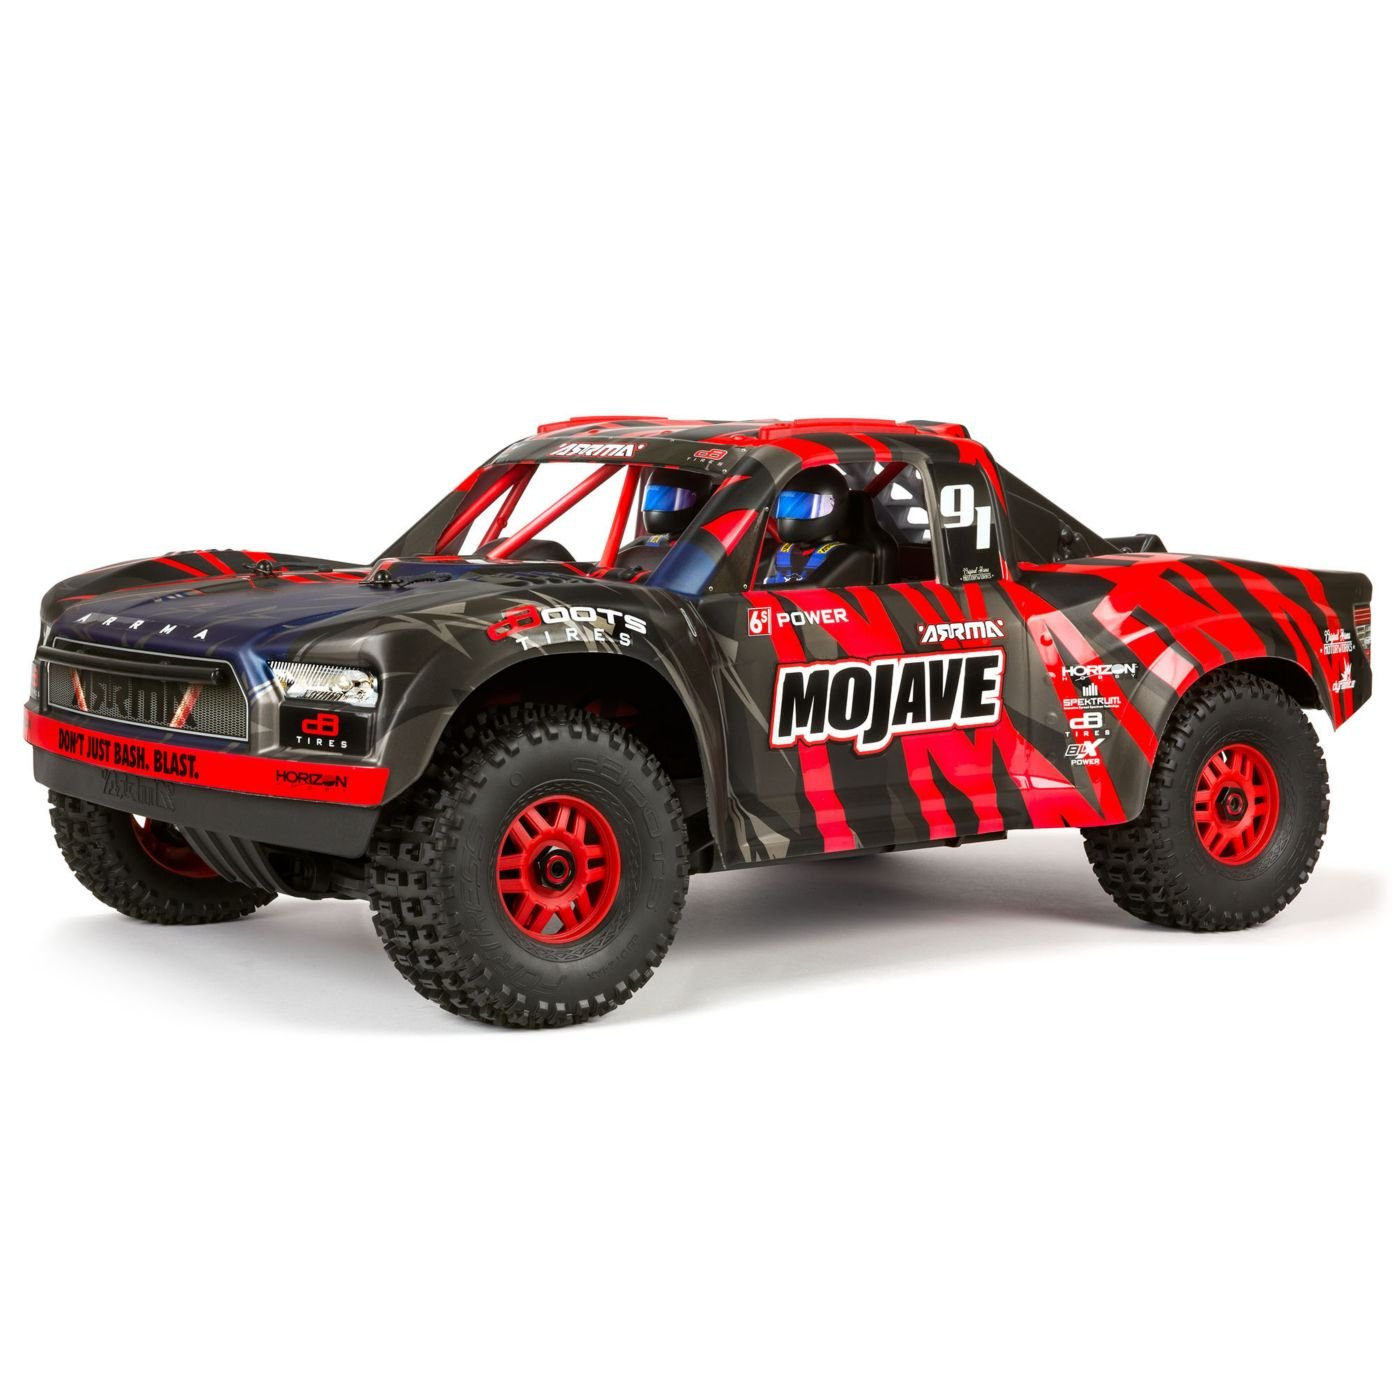 1/7 MOJAVE 6S BLX 4WD Desert Truck RTR, Black/Red